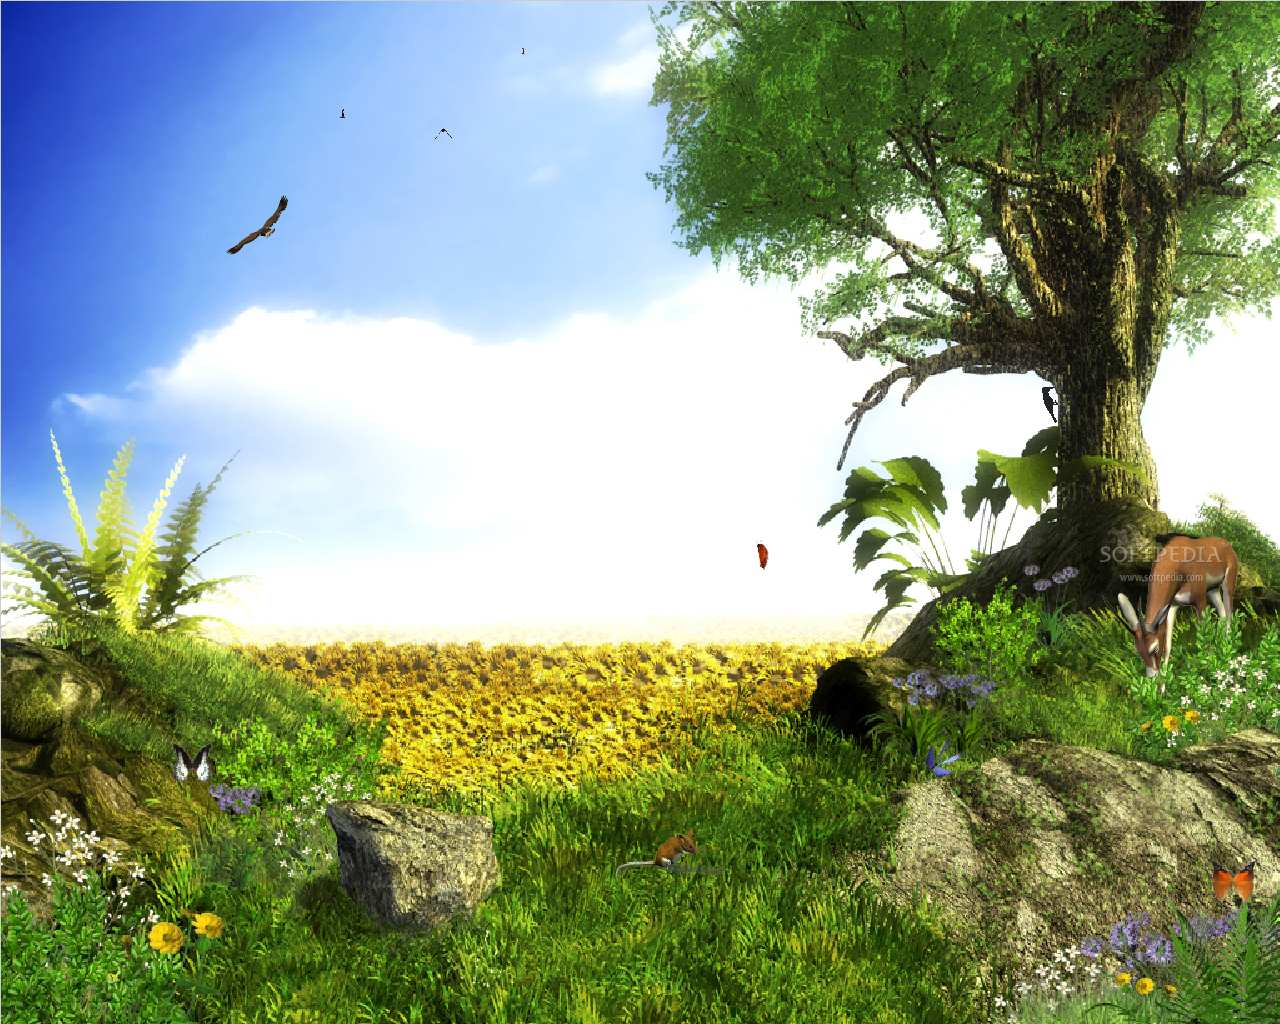 M M Desktop Wallpaper: Desktop Nature Wallpaper: 3d Animated Desktop, Free